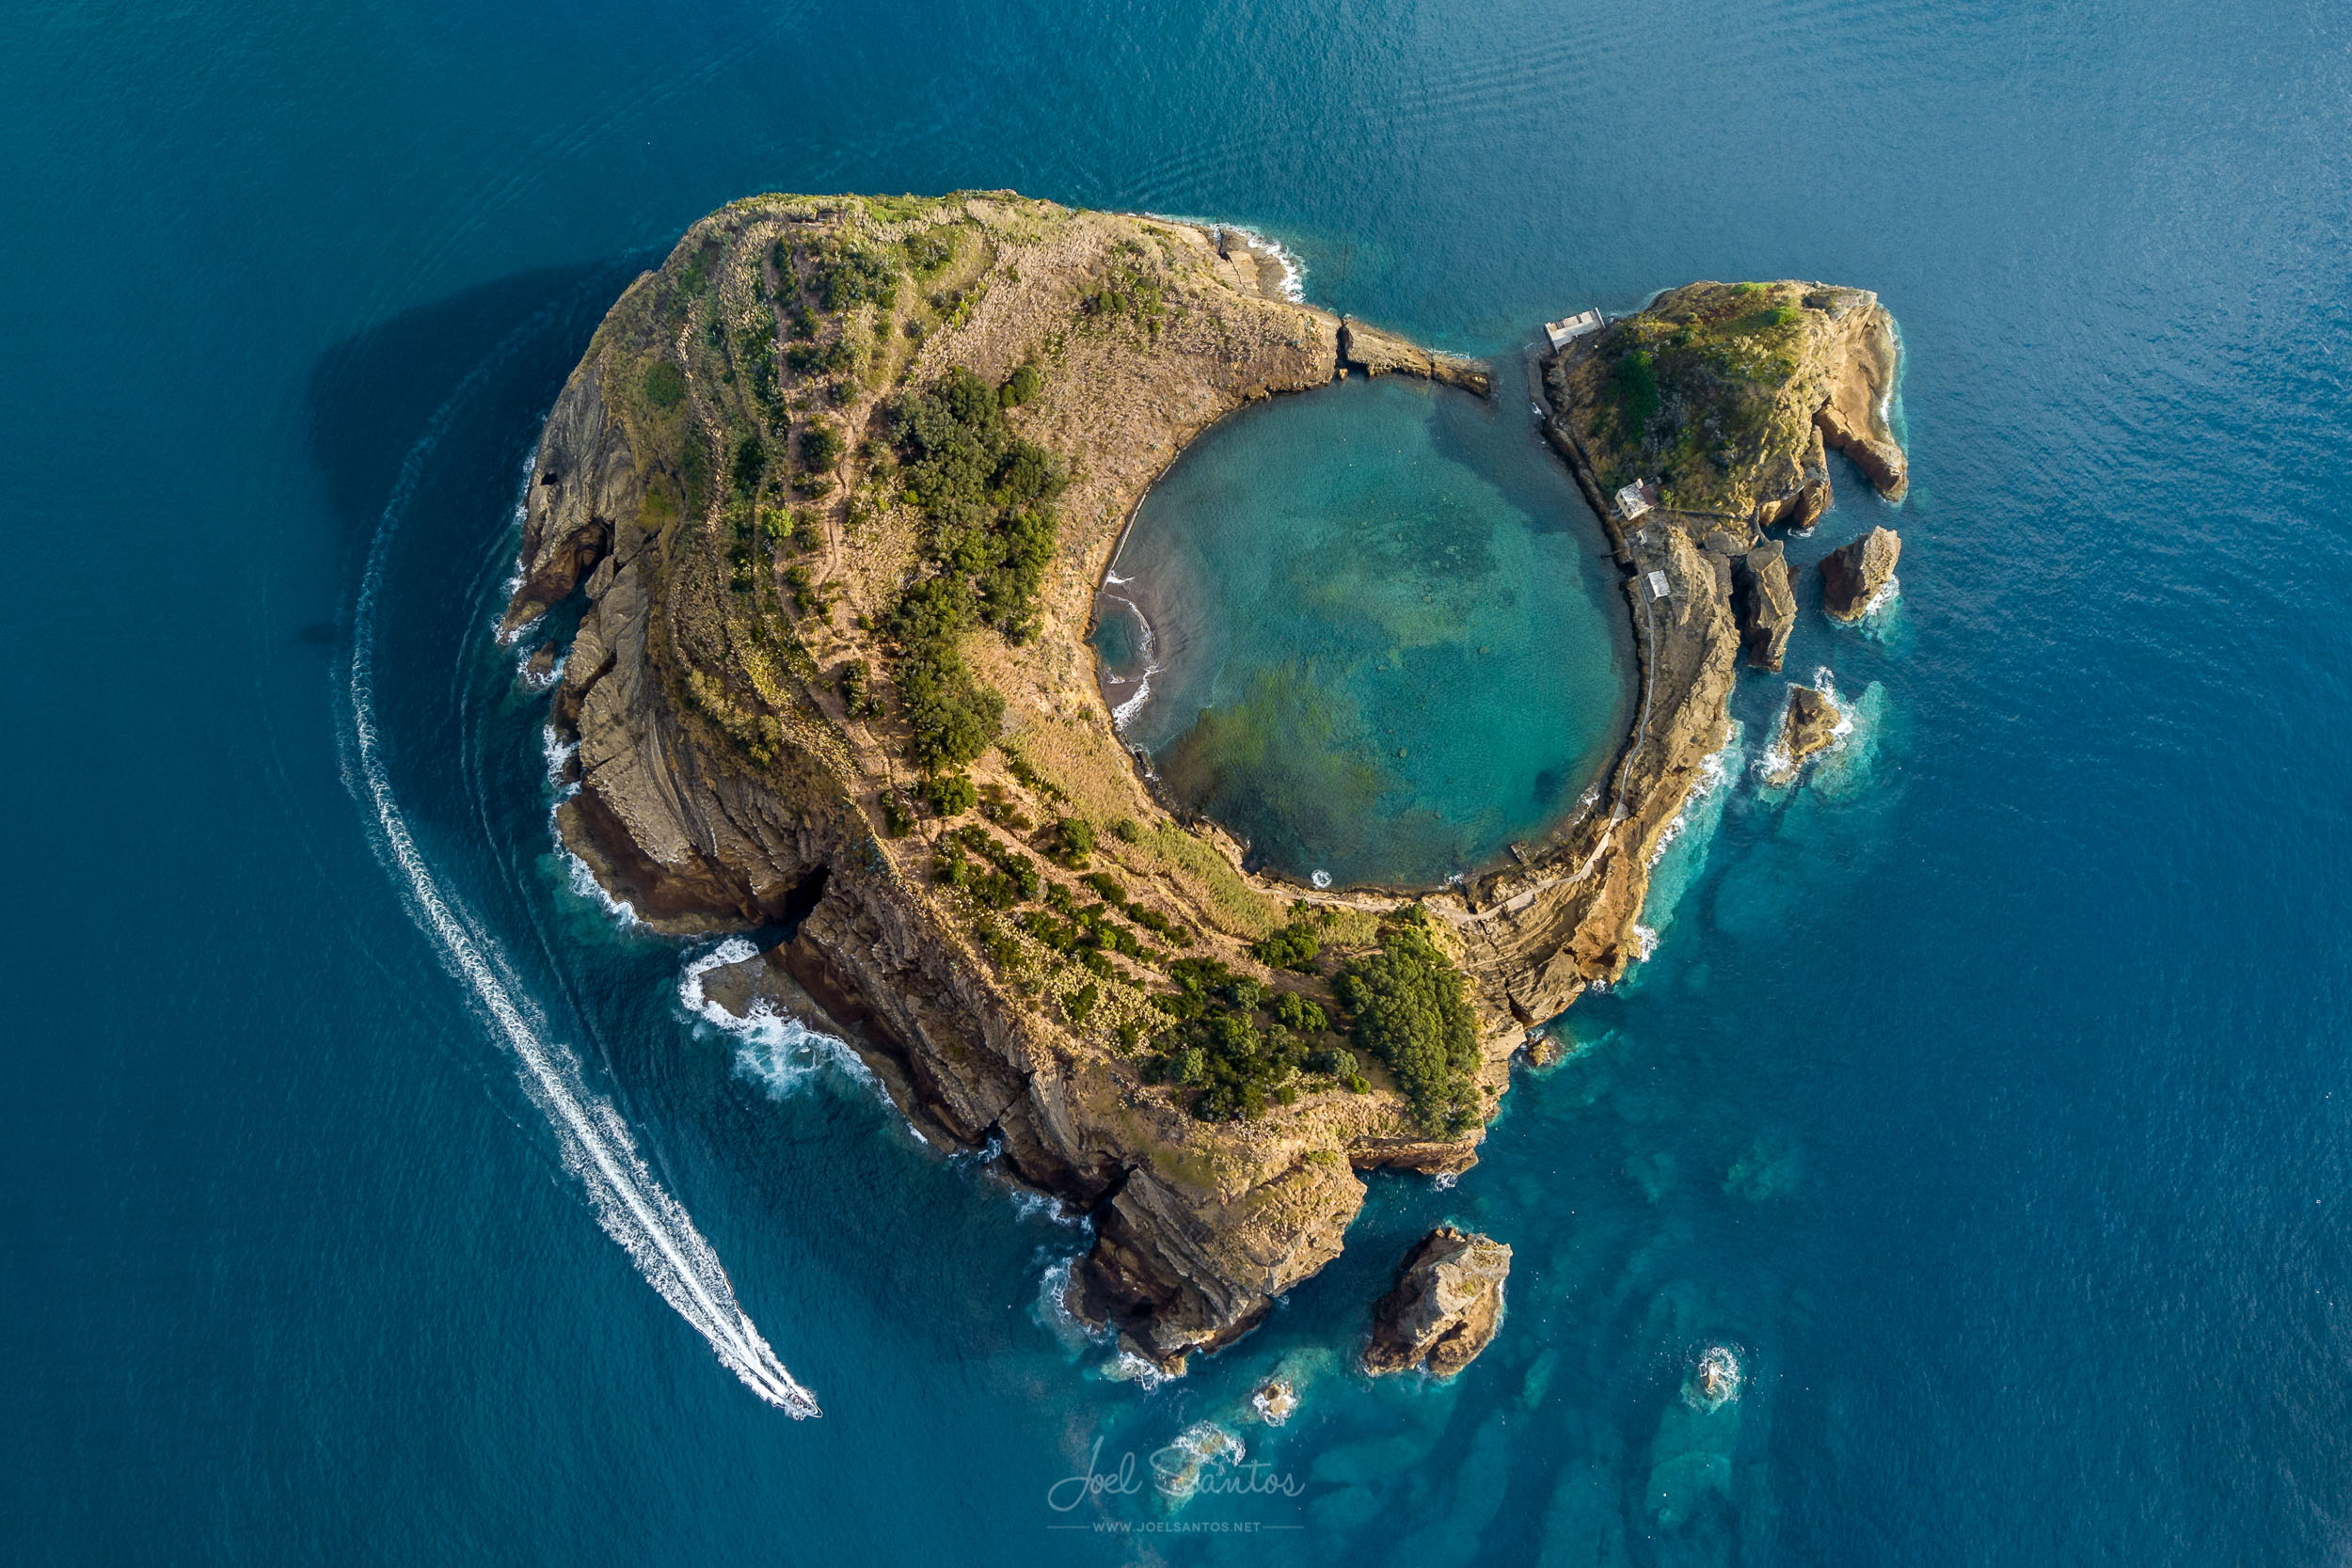 FROM THE SKY - Aerial photographs